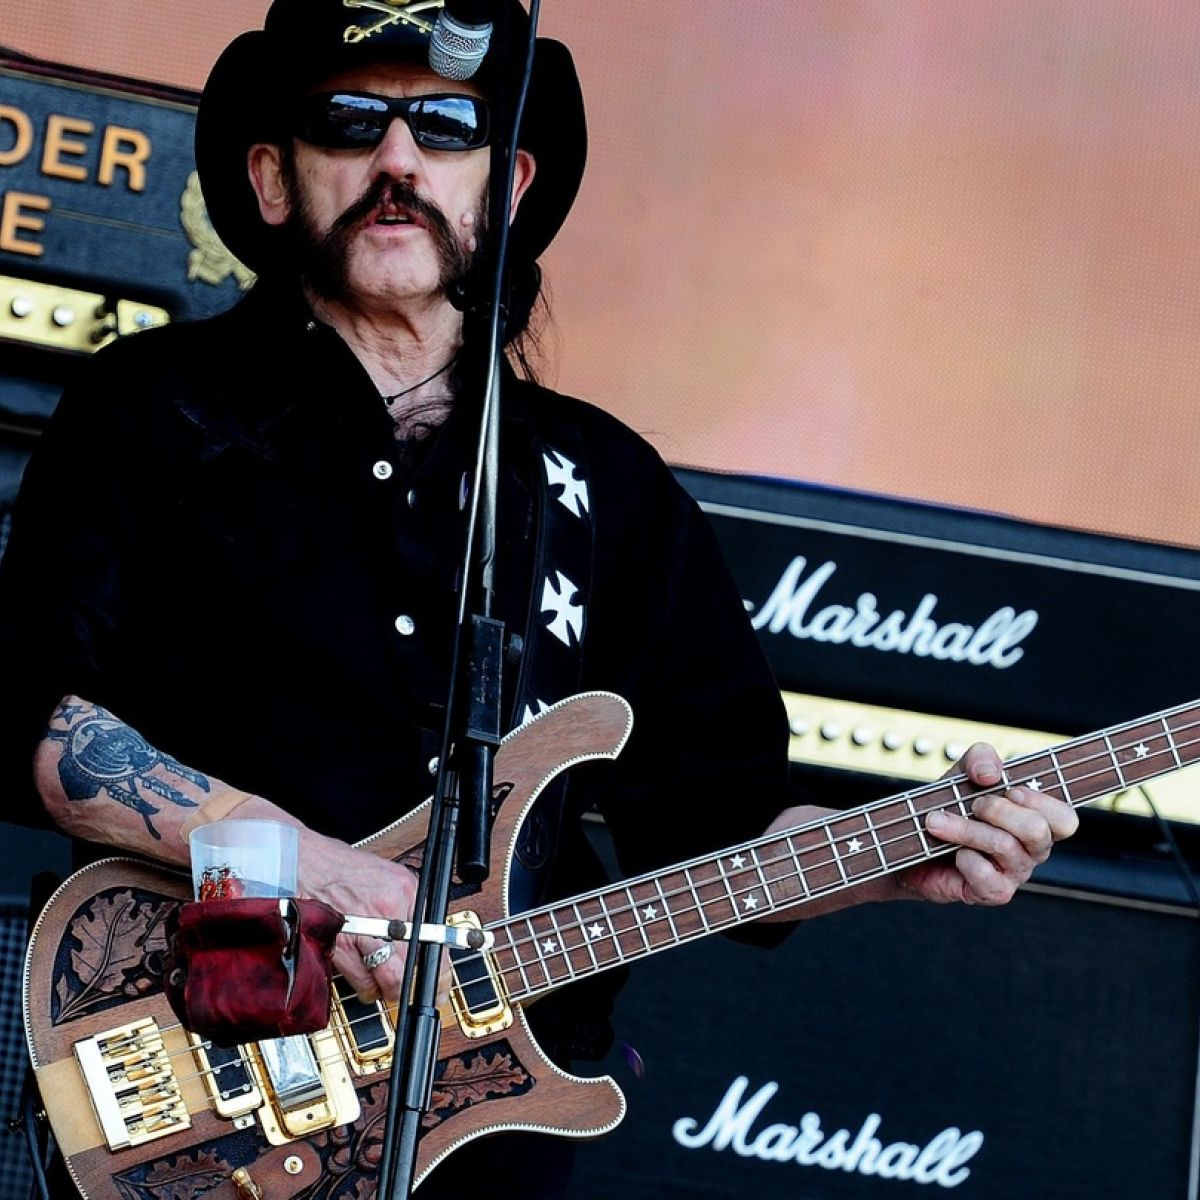 Born to lose, lived to win': Musicians pay tribute to Lemmy